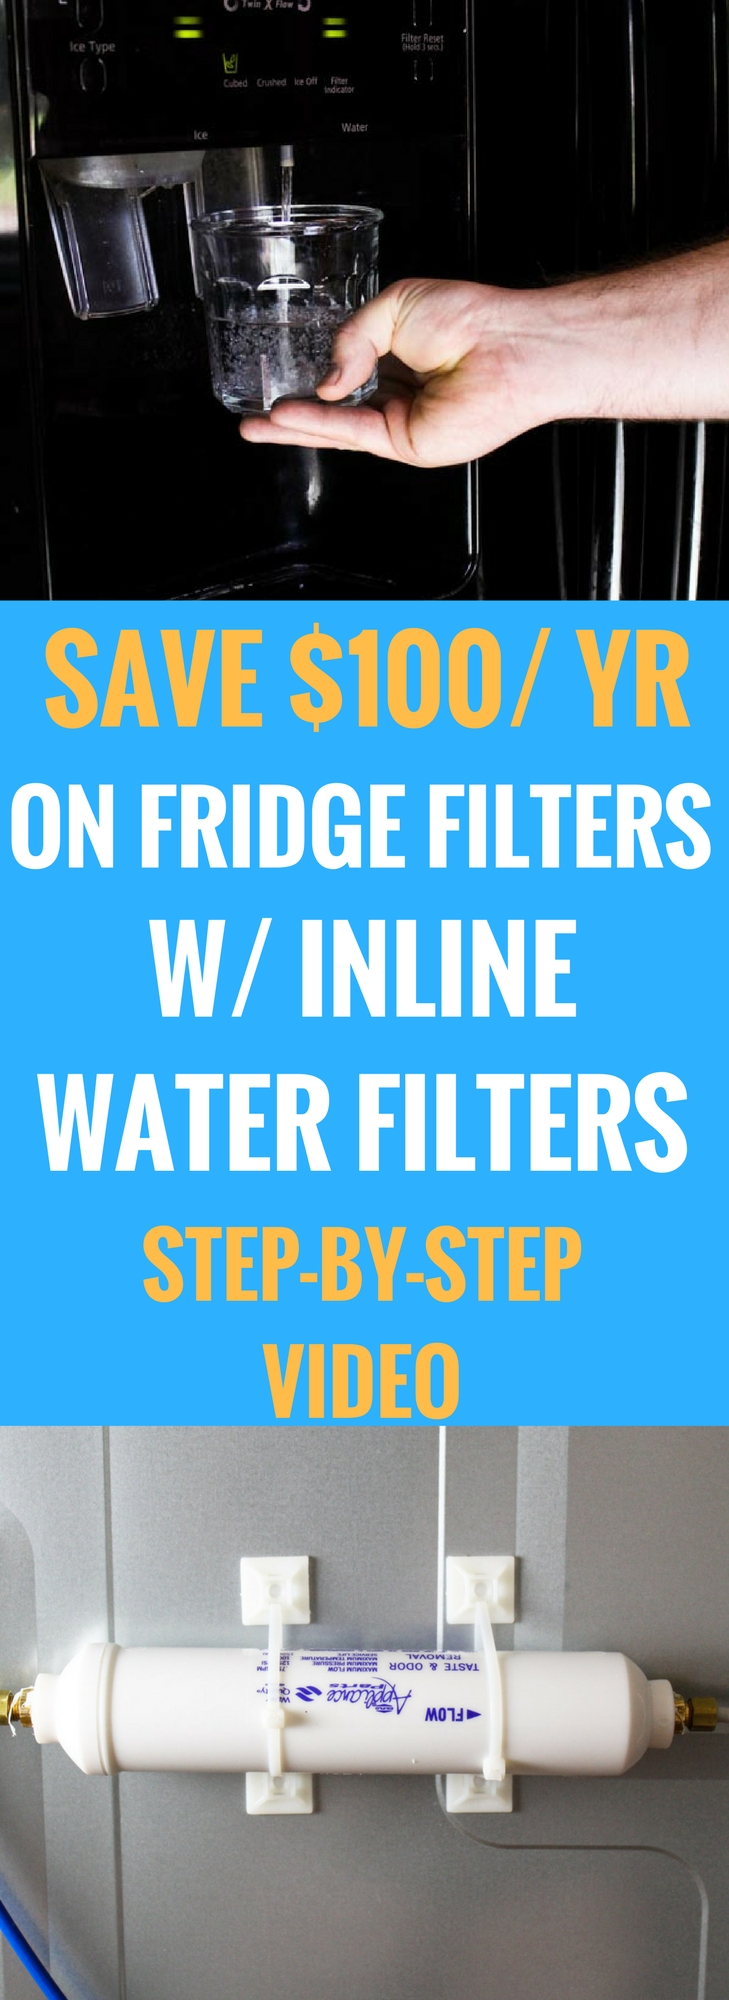 How to Install an Inline Water Filter For Samsung Whirlpool